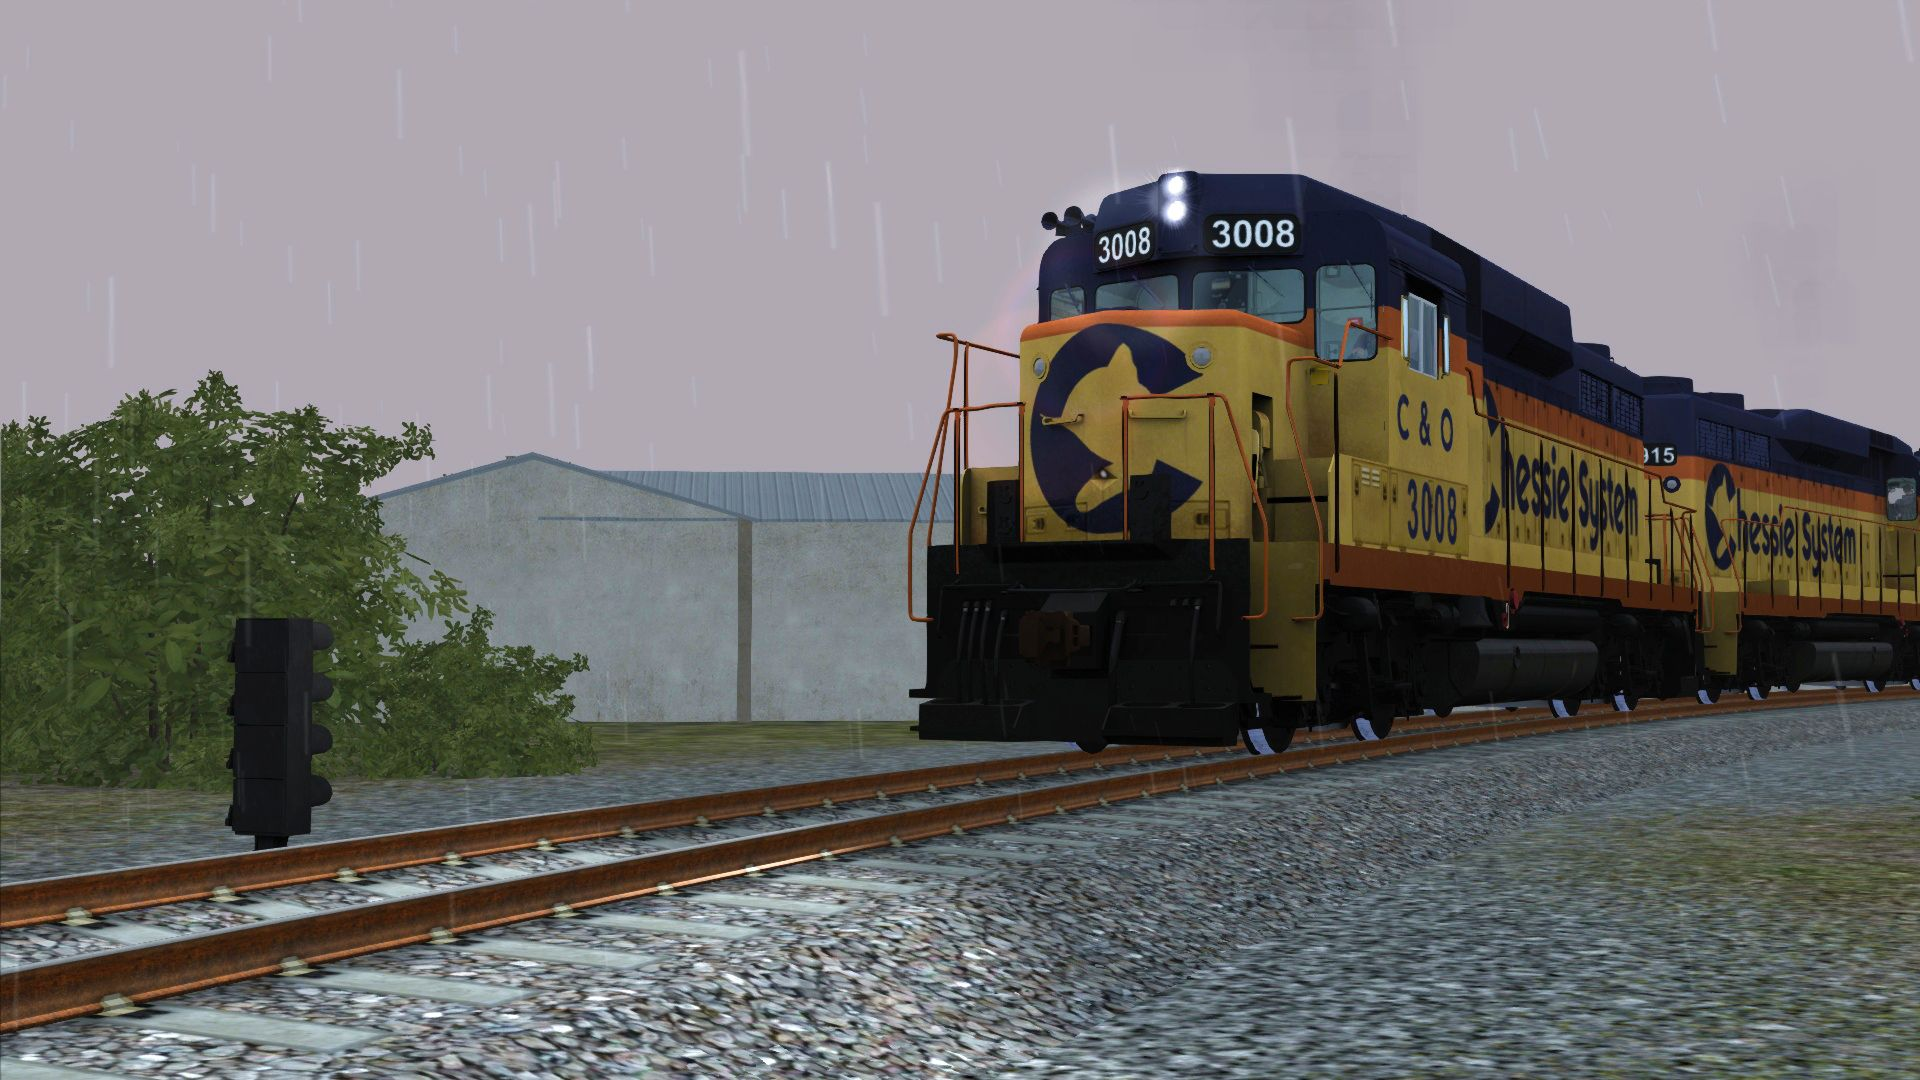 Image showing the Chessie Systems livery pack for the GP30 locomotive from the TS Marketplace